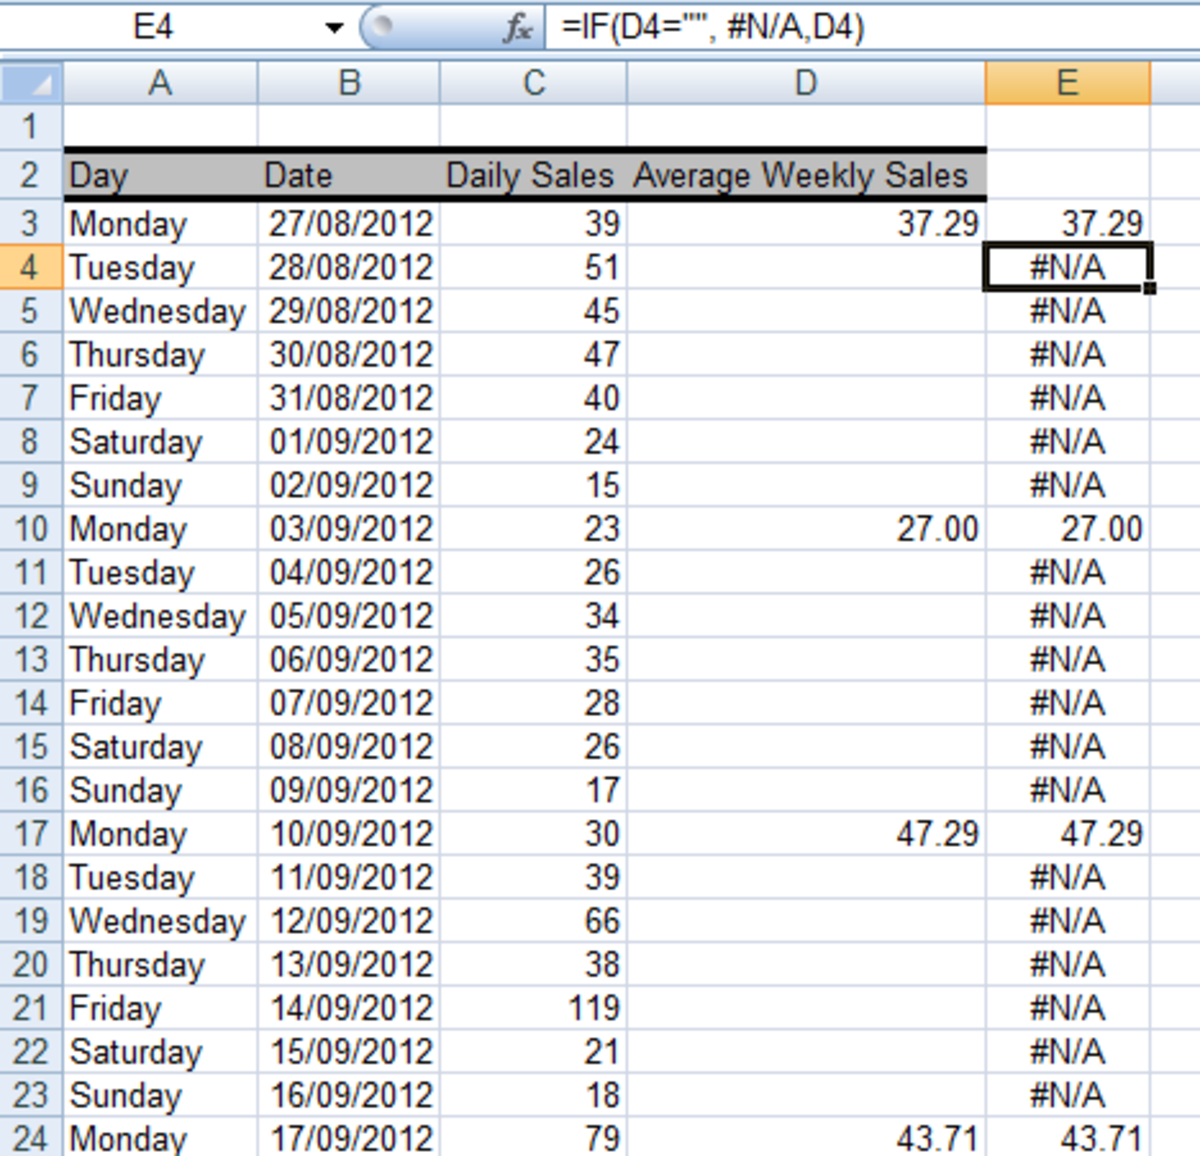 Ediblewildsus  Marvellous How To Get Excel  And  To Ignore Empty Cells In A Chart Or  With Extraordinary Using The If Function In A Formula To Convert Empty Cells To Na With Cute Sort Alphabetically Excel Also Change Row To Column In Excel In Addition Null Excel And How To Compare Two Excel Spreadsheets As Well As Add To Drop Down List In Excel Additionally Best Fit Line In Excel From Turbofuturecom With Ediblewildsus  Extraordinary How To Get Excel  And  To Ignore Empty Cells In A Chart Or  With Cute Using The If Function In A Formula To Convert Empty Cells To Na And Marvellous Sort Alphabetically Excel Also Change Row To Column In Excel In Addition Null Excel From Turbofuturecom